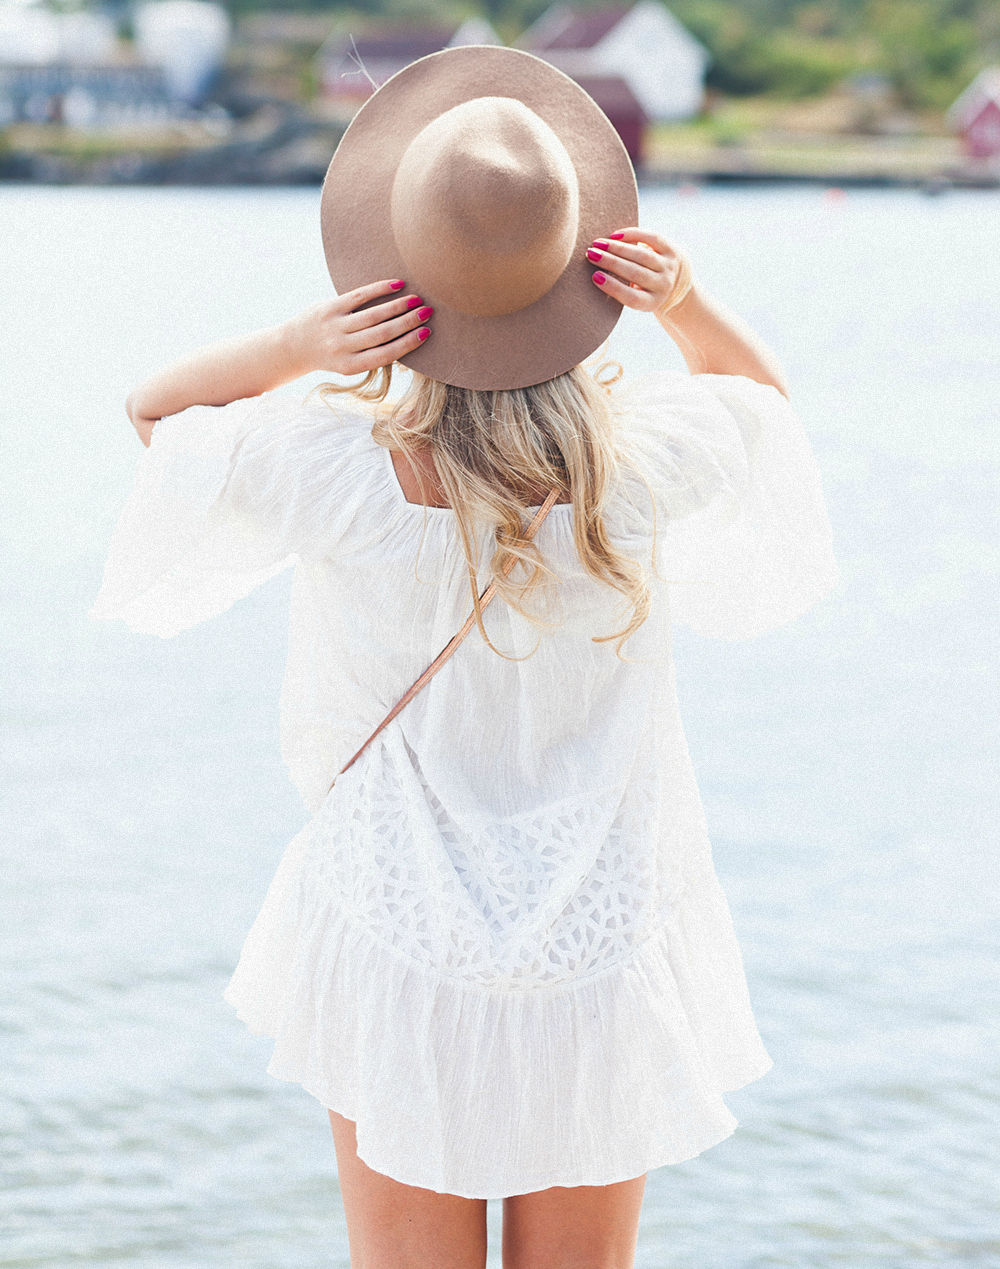 Cathrine Heienberg in a white summer dress and hat